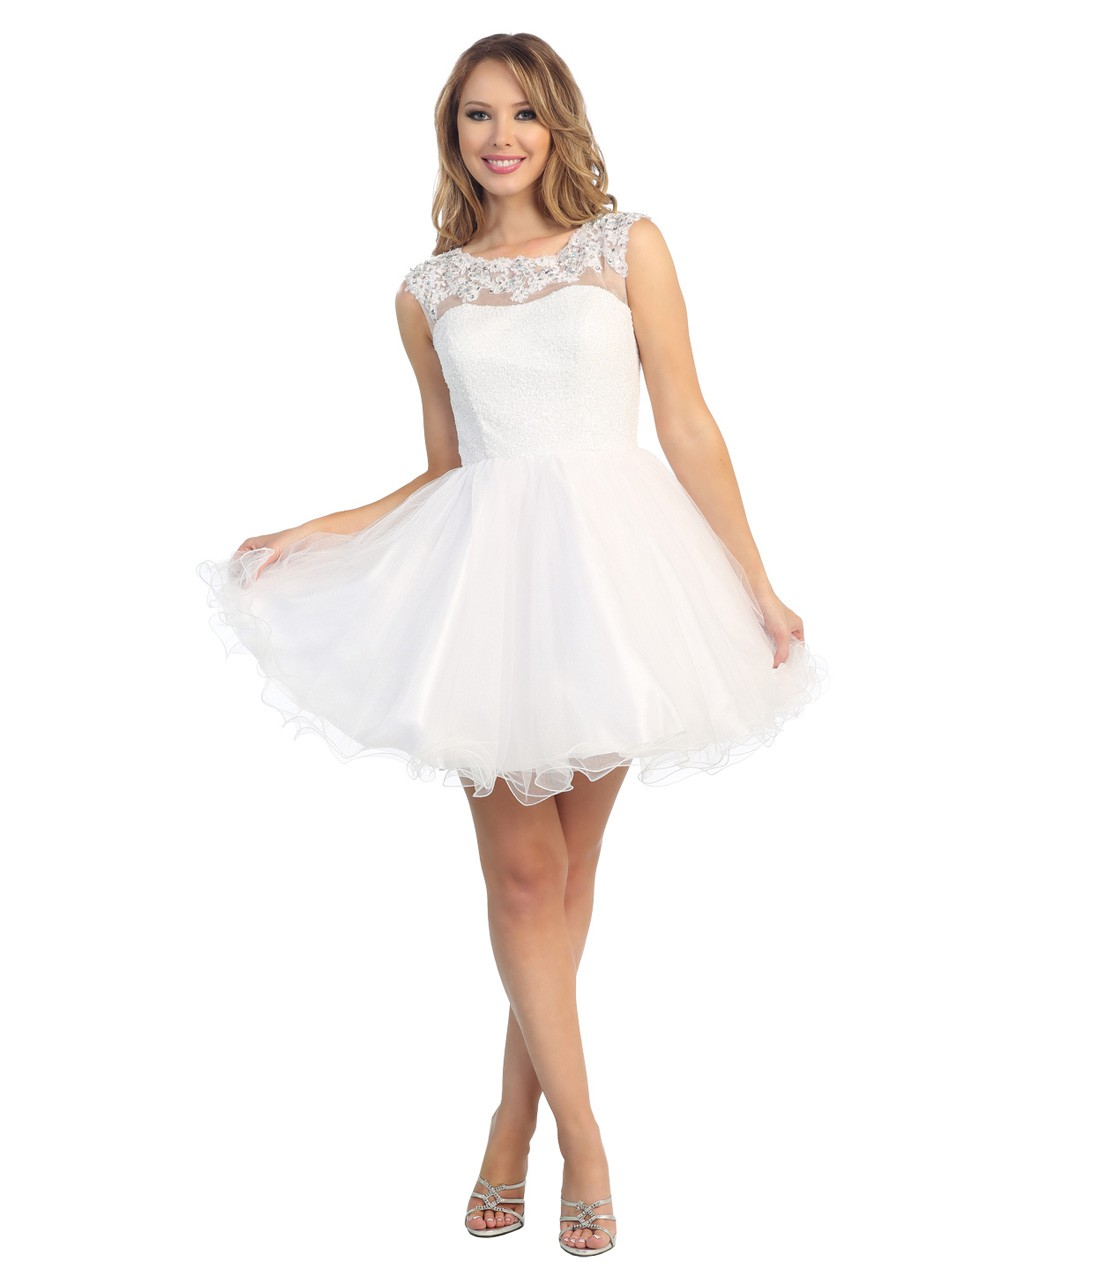 White Prom Dress with Sleeves